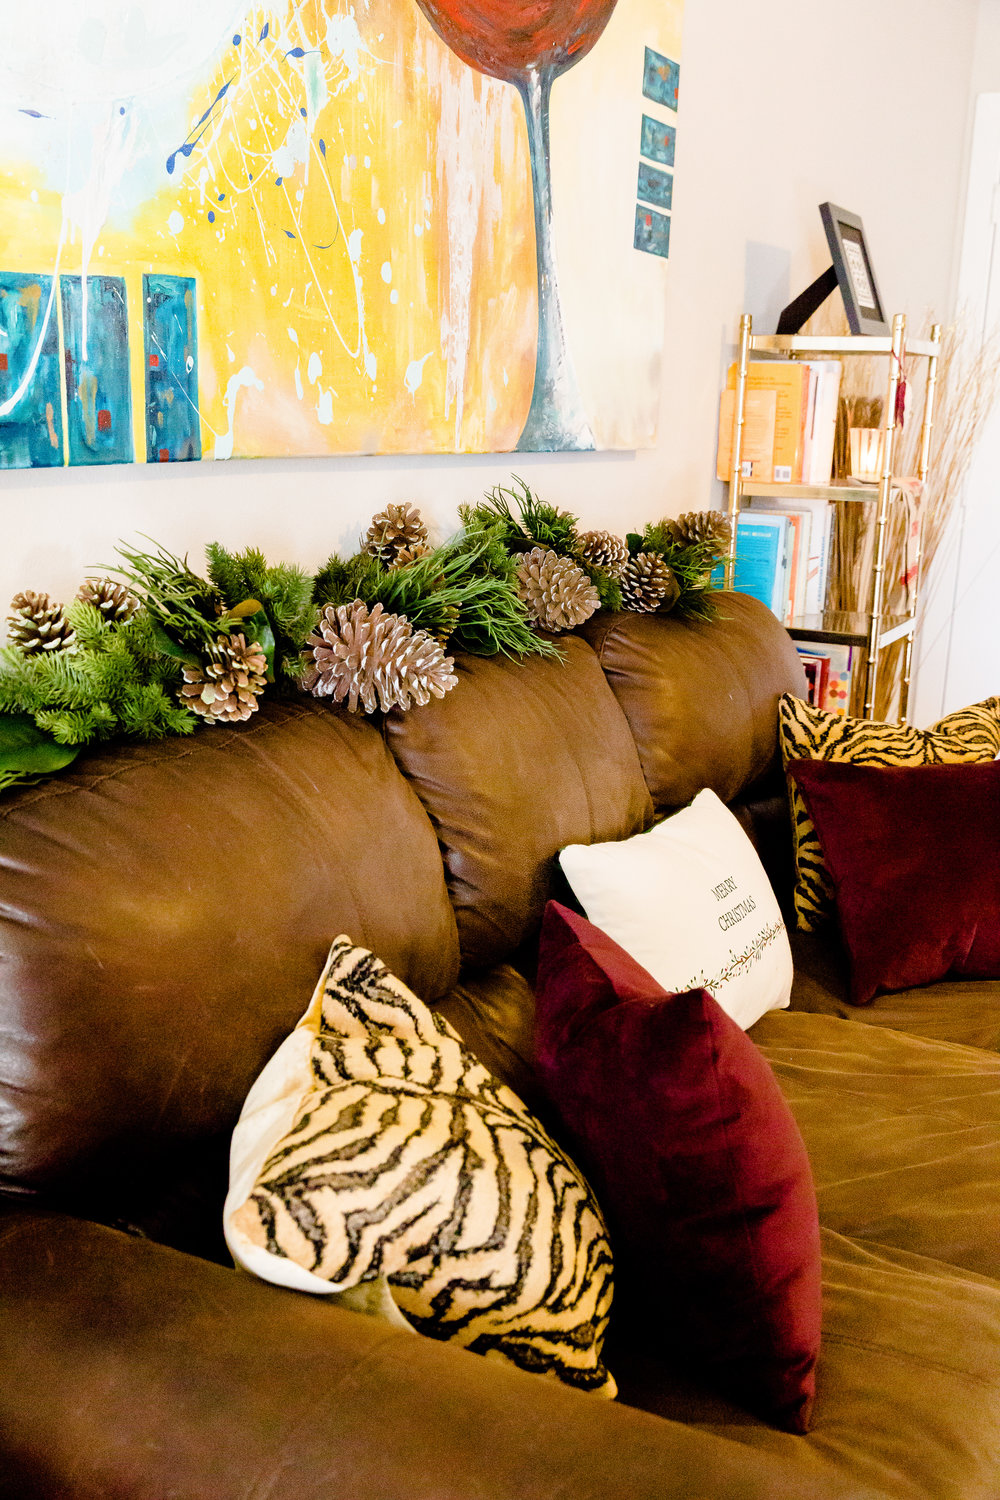 madison katlin photography, christmas central garland, tiger pillows, burgundy velvet pillows, christmas decor, small apartment christmas ideas